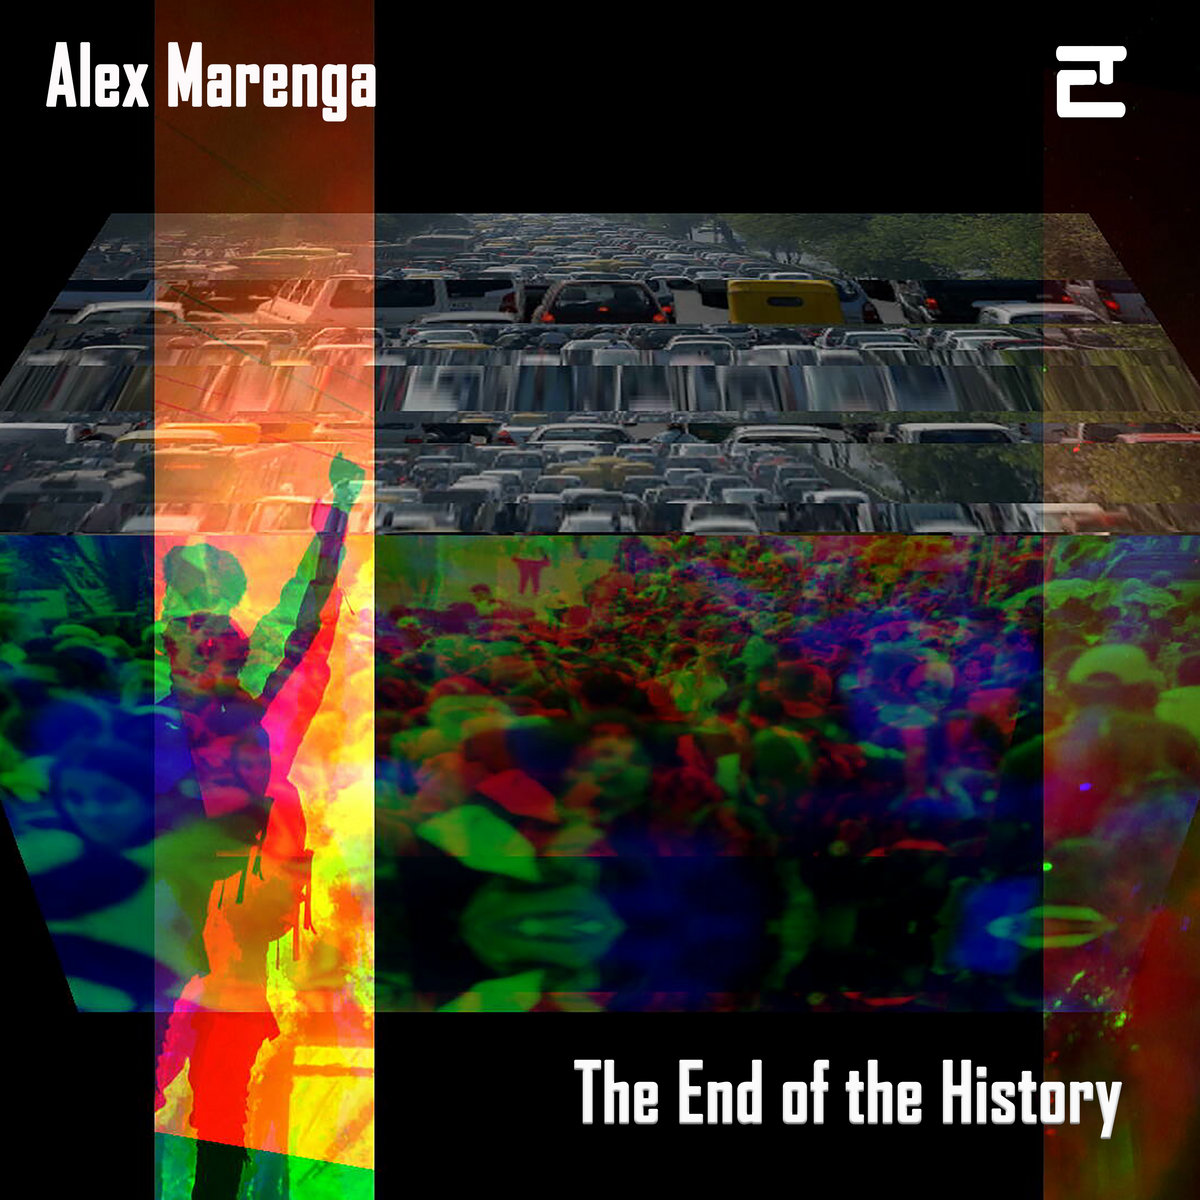 Videos from Alex Marenga's album The End of The History